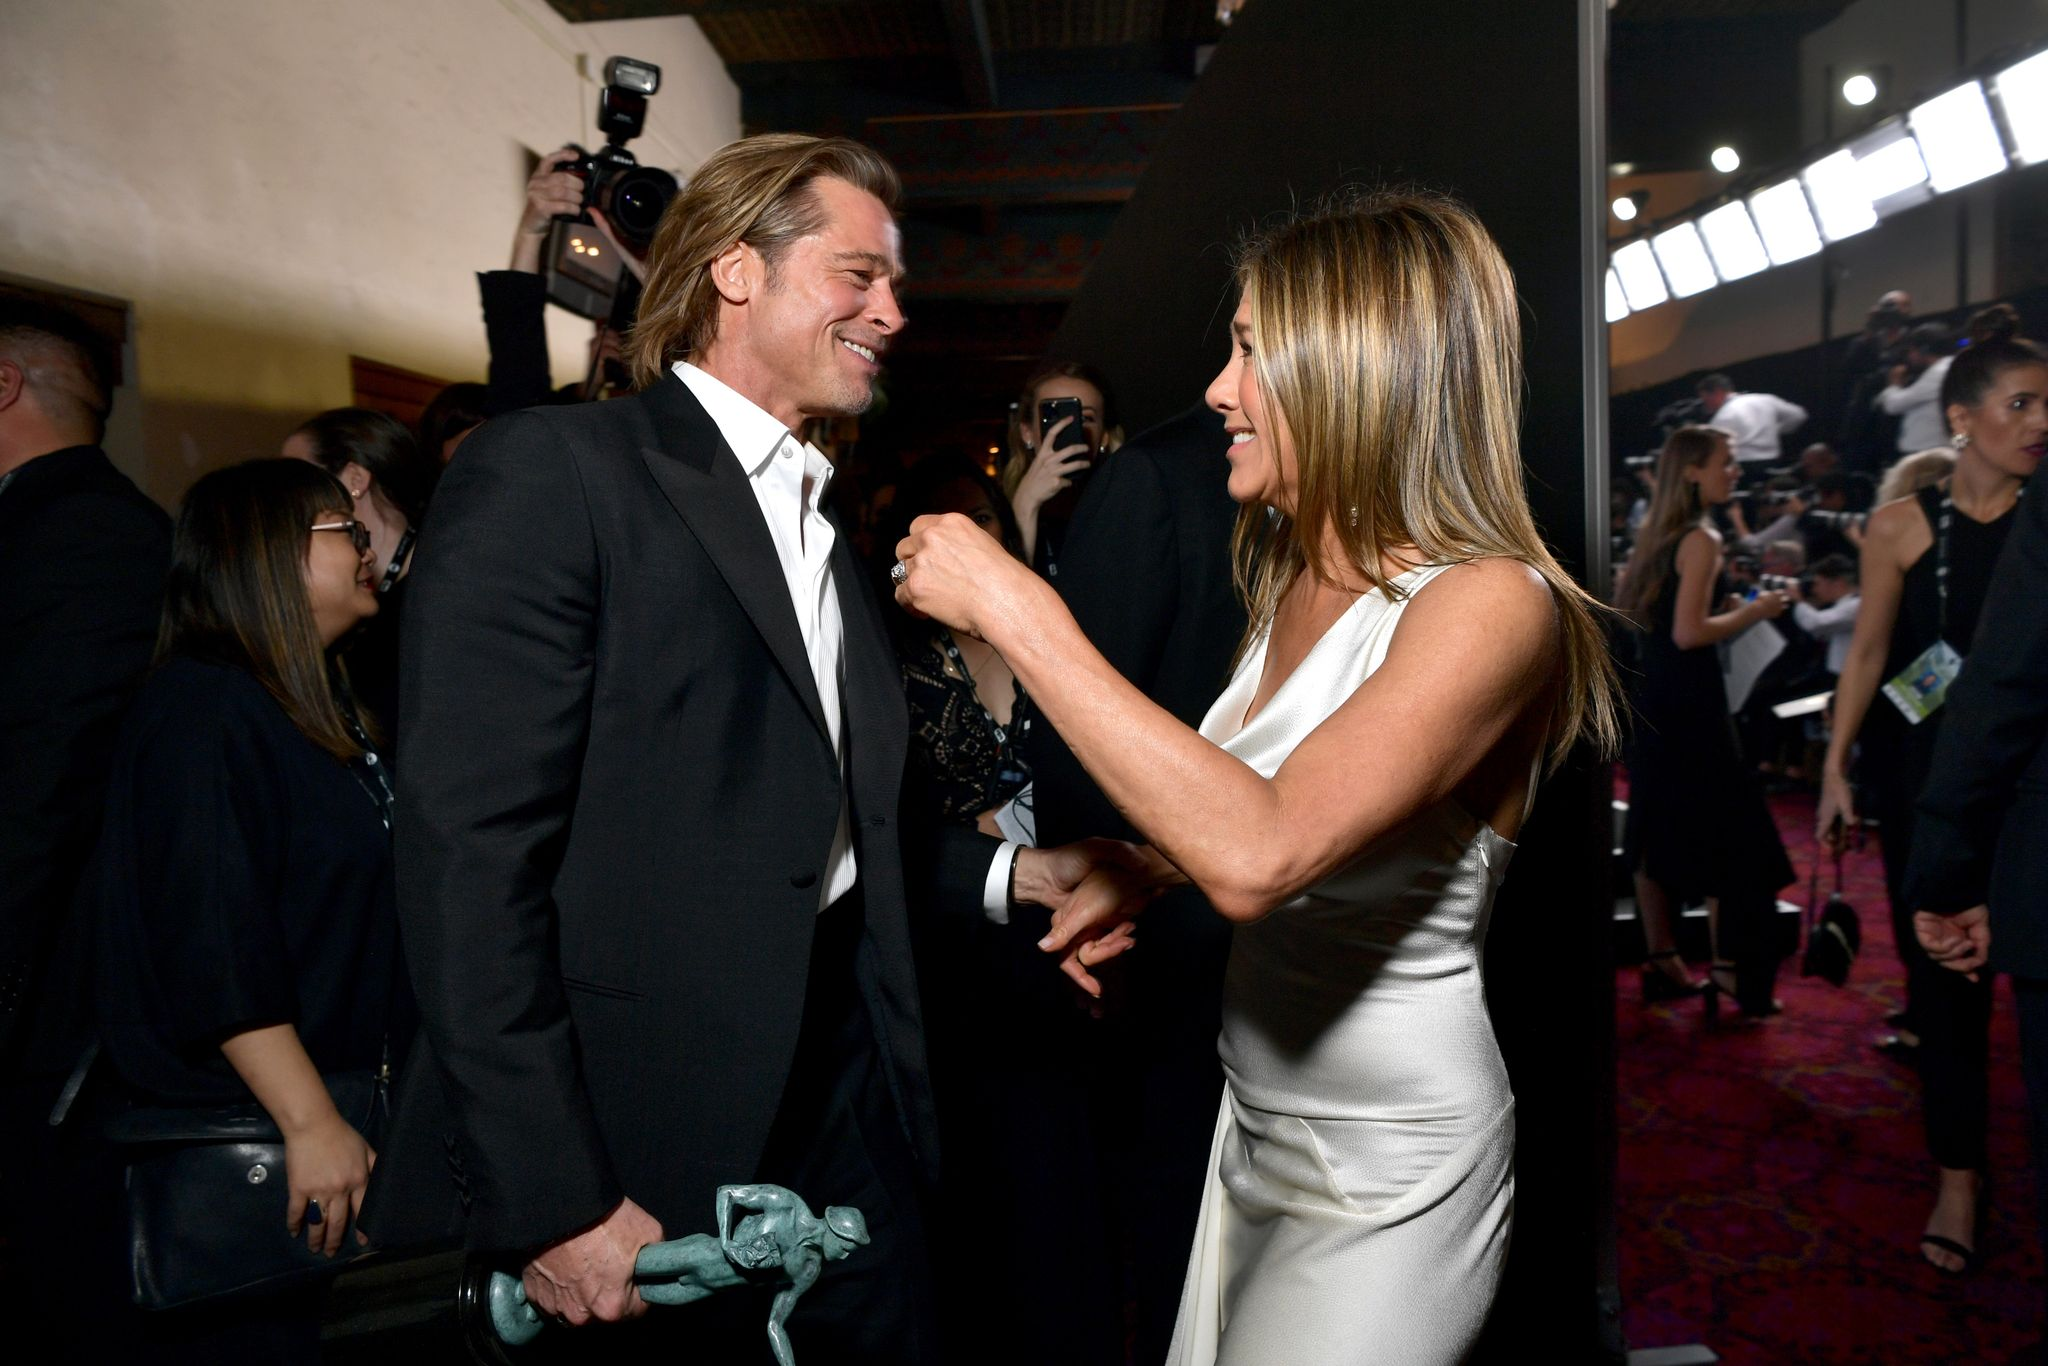 Image Credit: Getty Images | Brad Pitt and Jennifer Aniston at the 26th Annual Screen Actors Guild Awards on January 19, 2020